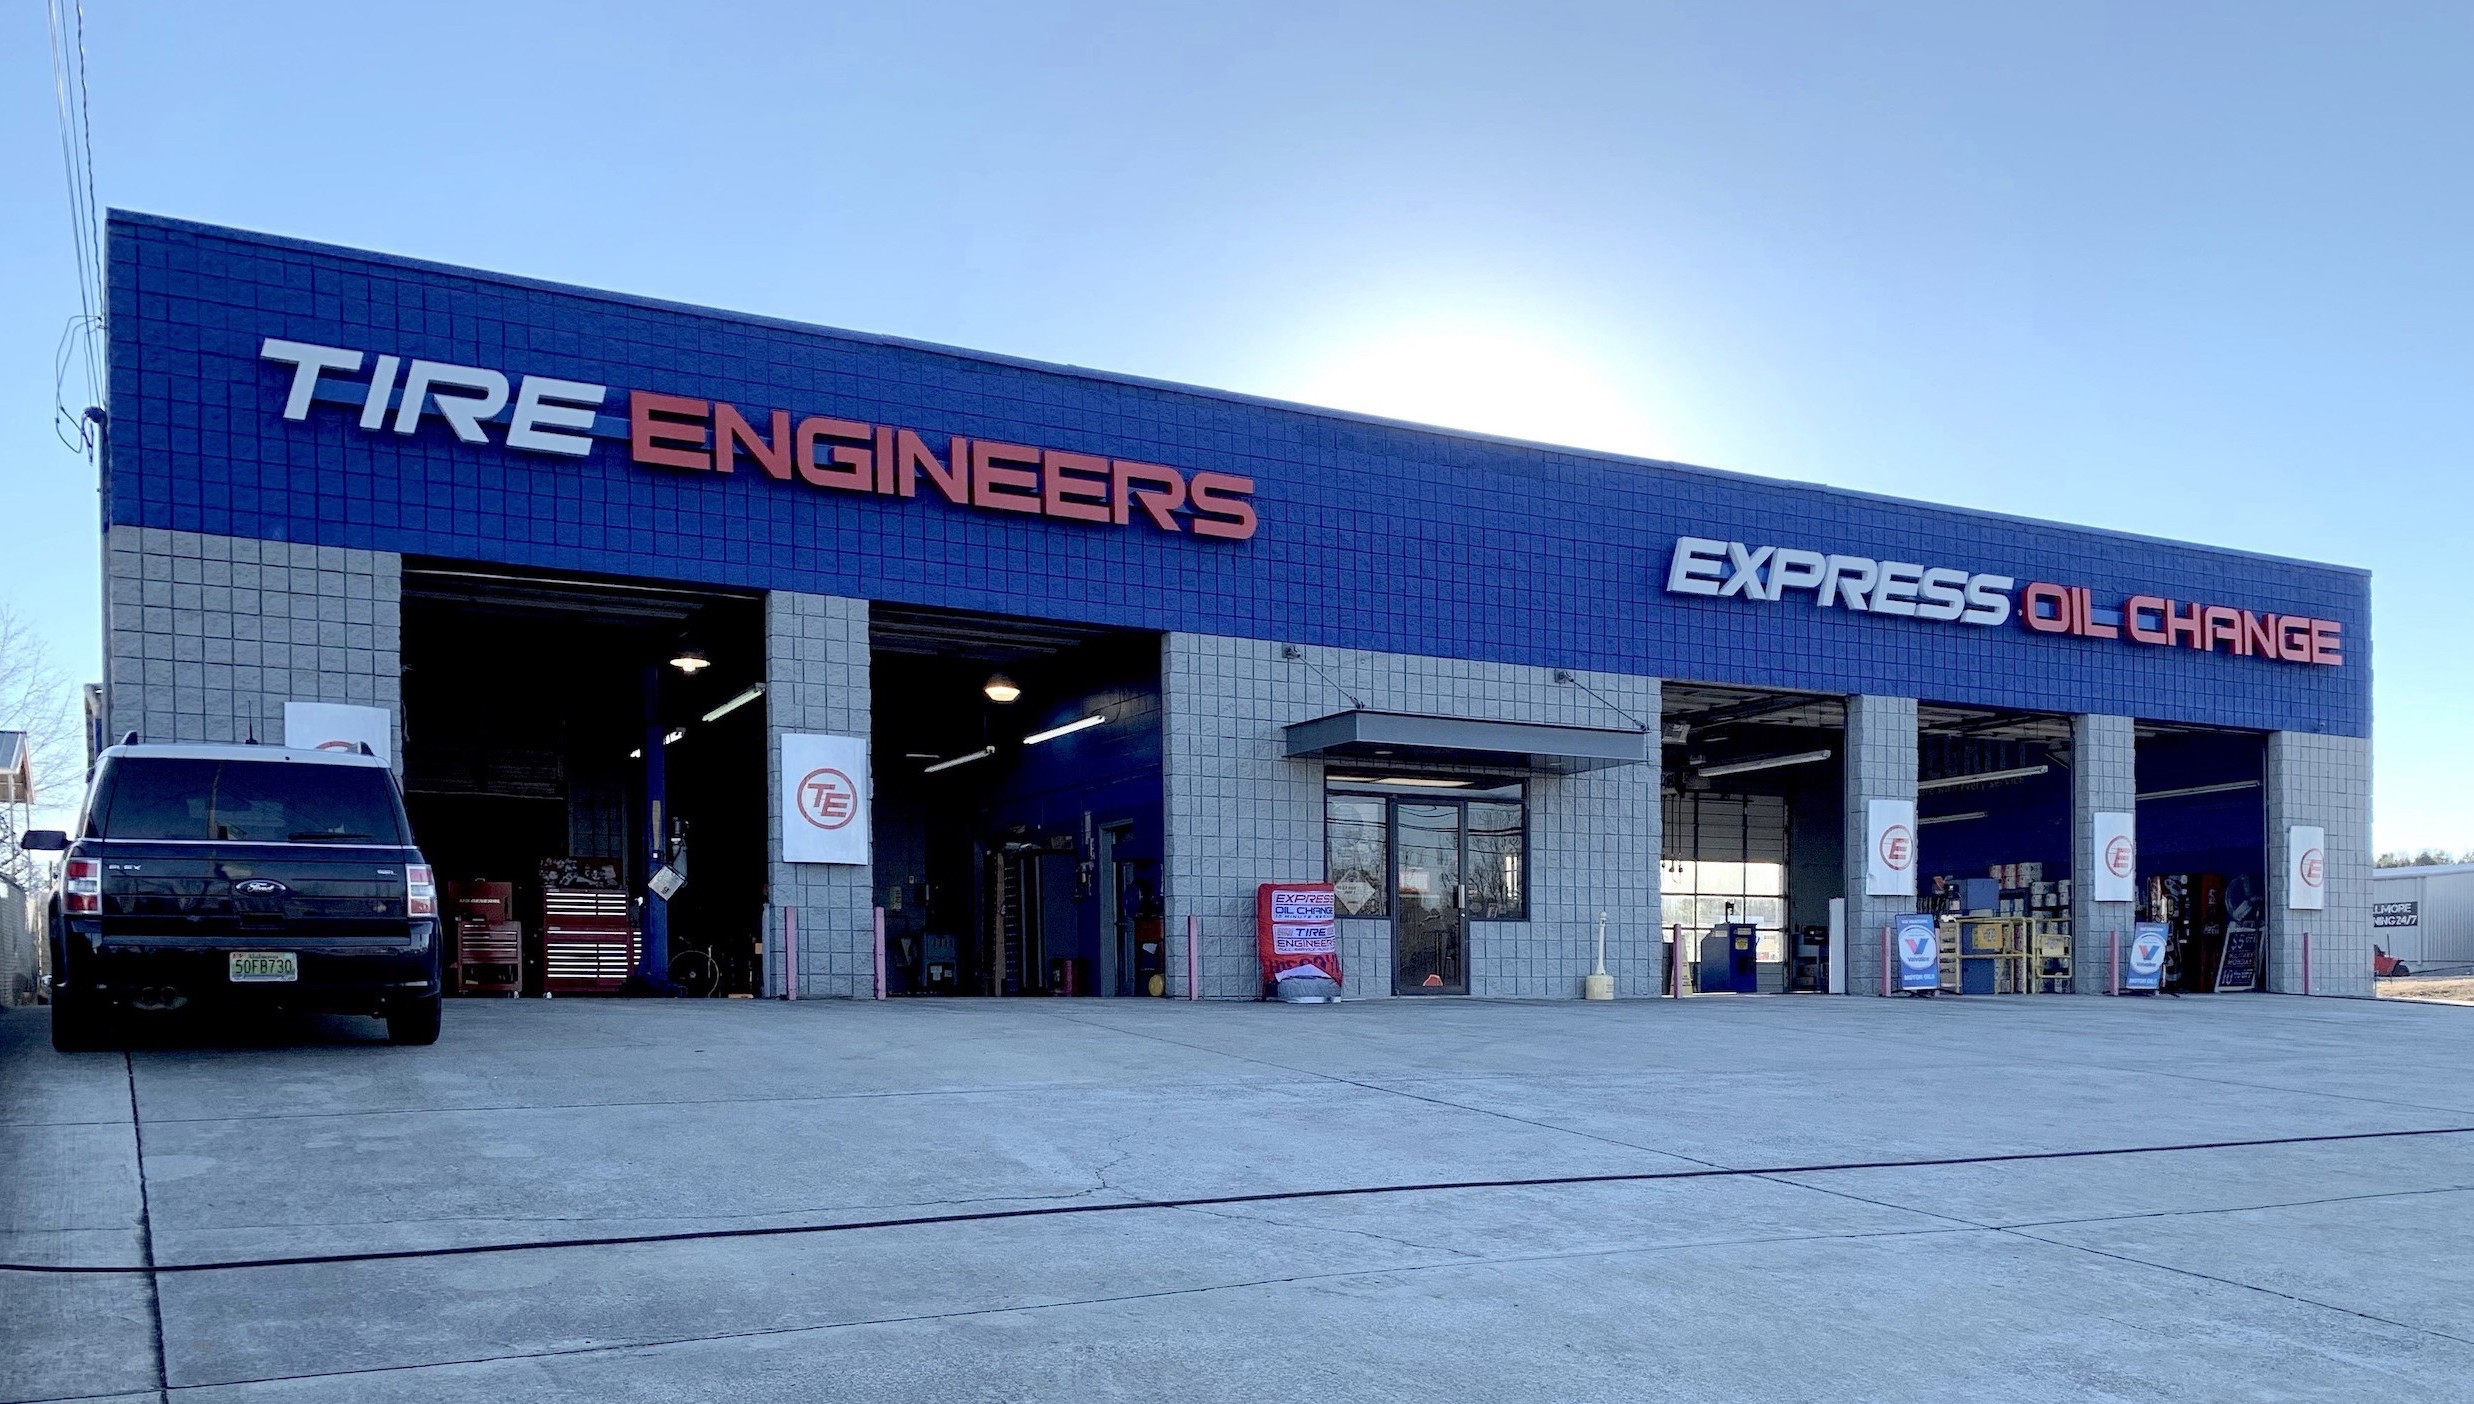 Express Oil Change & Tire Engineers Boaz, AL store